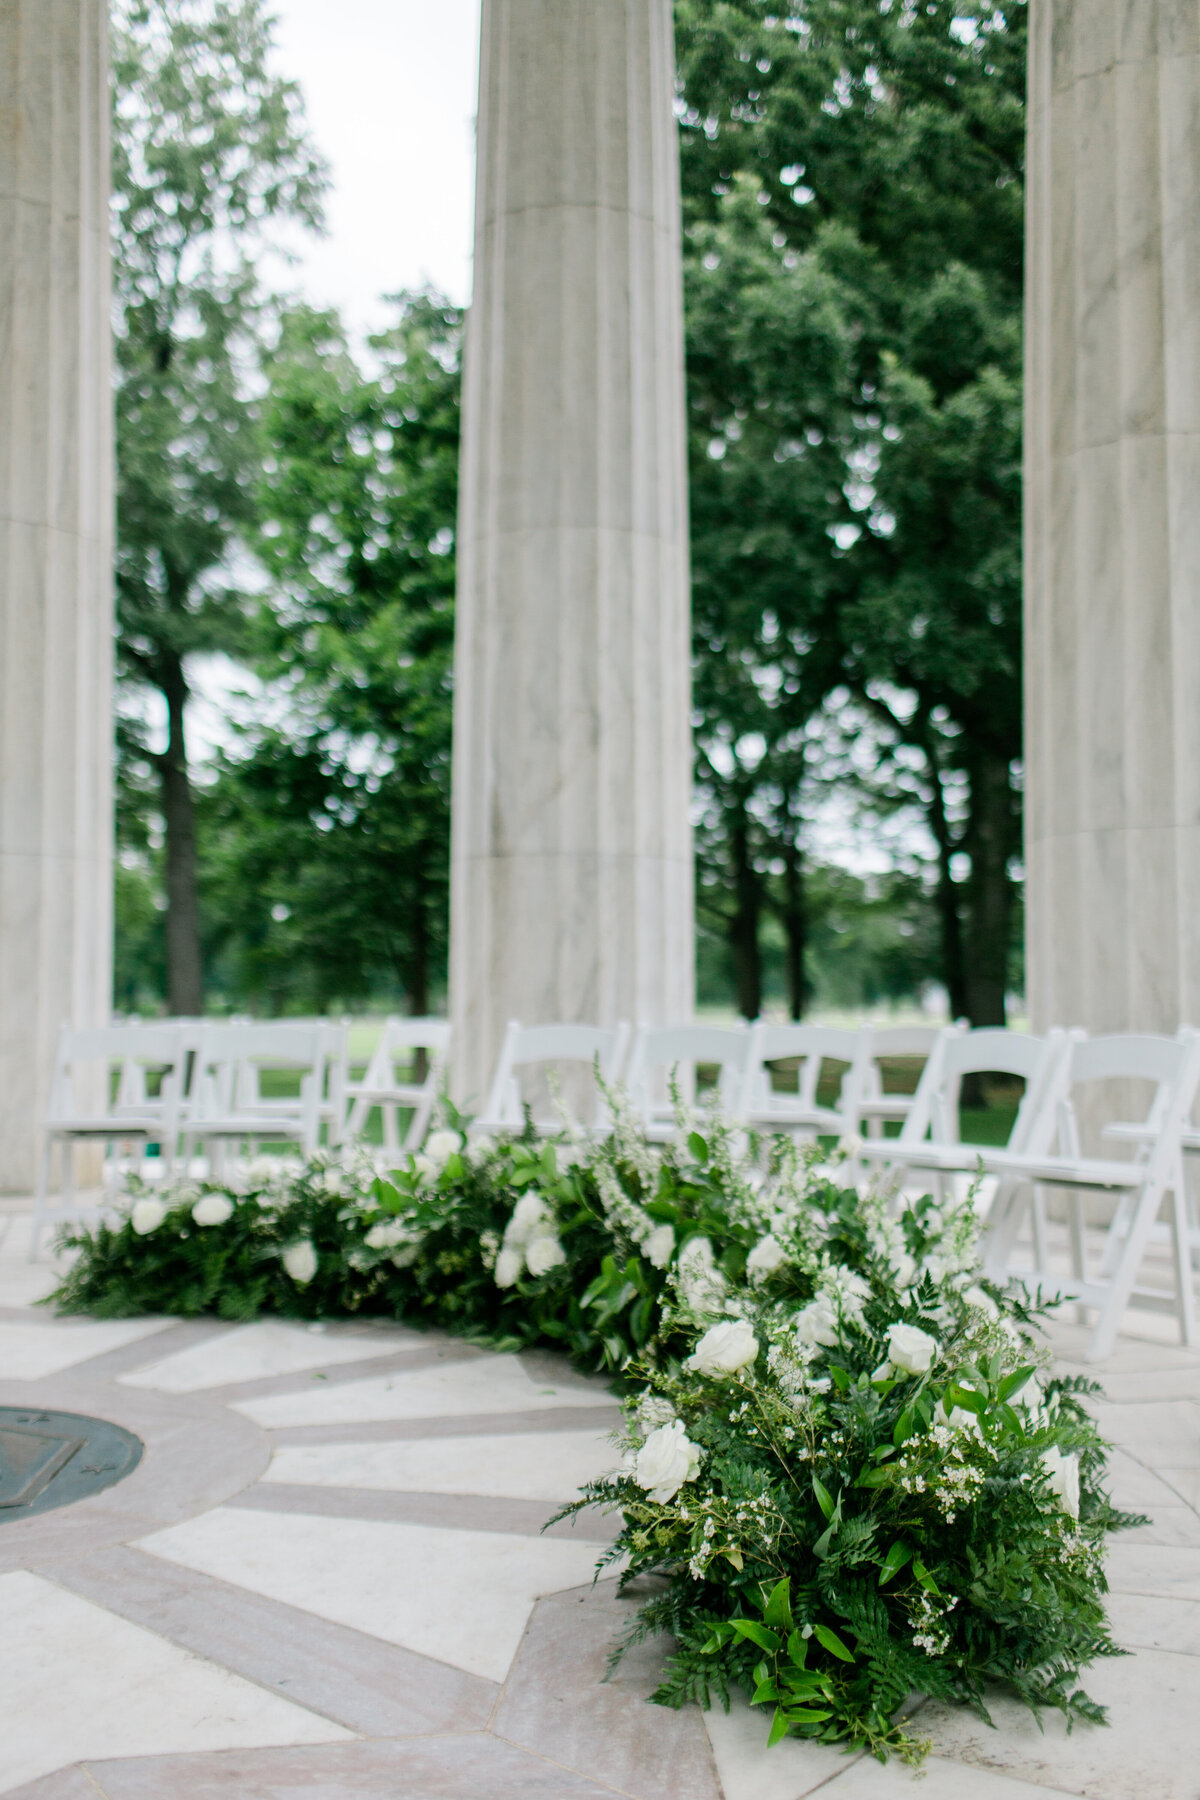 Solomon_Tkeyah_Micro_COVID_Wedding_Washington_DC_War_Memorial_MLK_Memorial_Linoln_Memorial_Angelika_Johns_Photography-9191